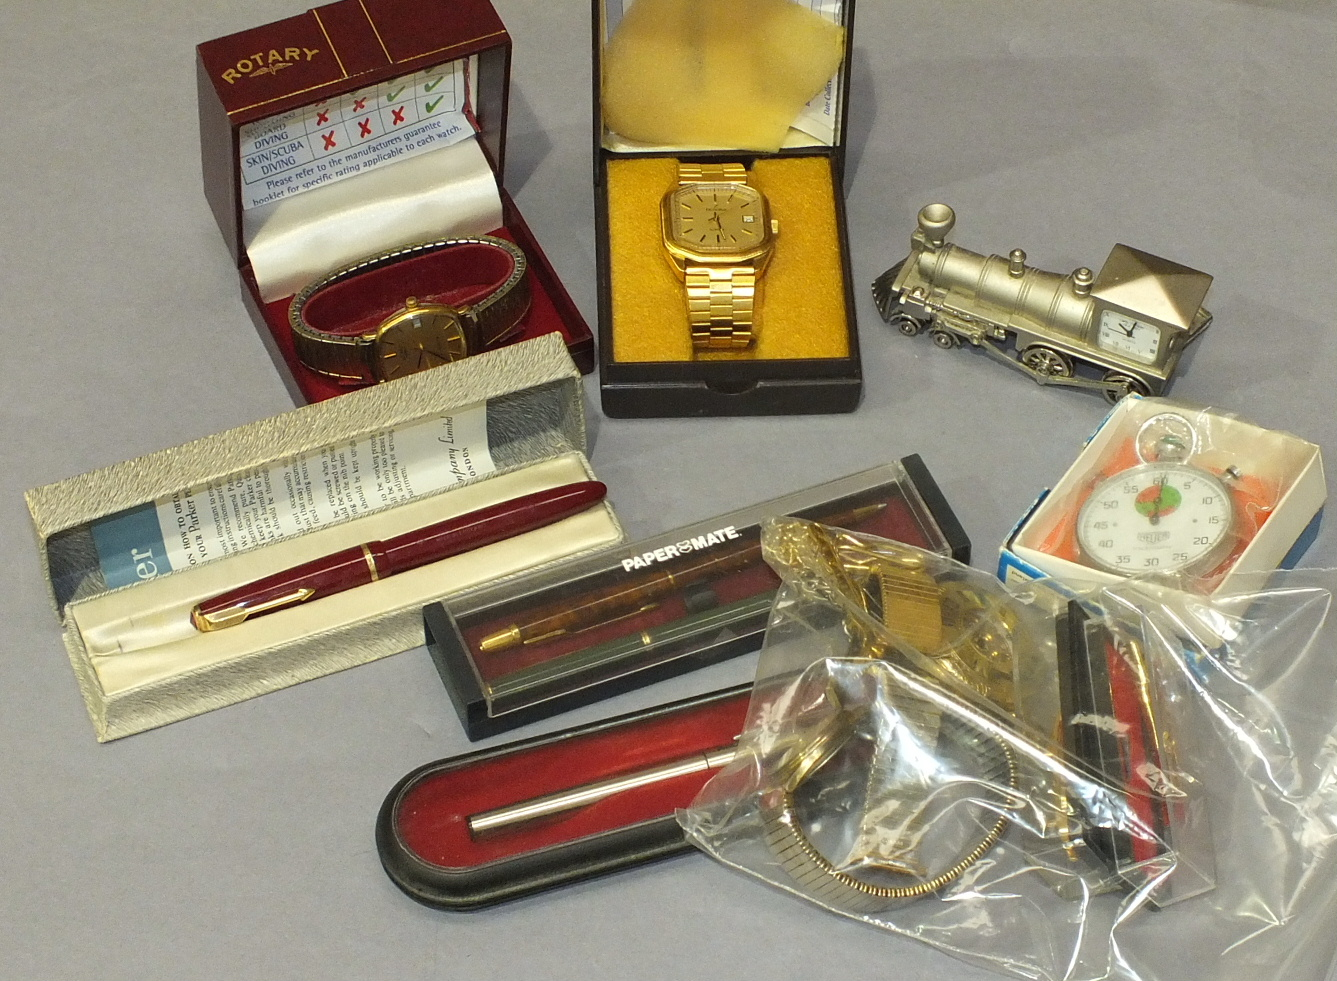 Lot 196 - Two pairs of binoculars, a Rotary quartz yellow metal wrist watch and other items.